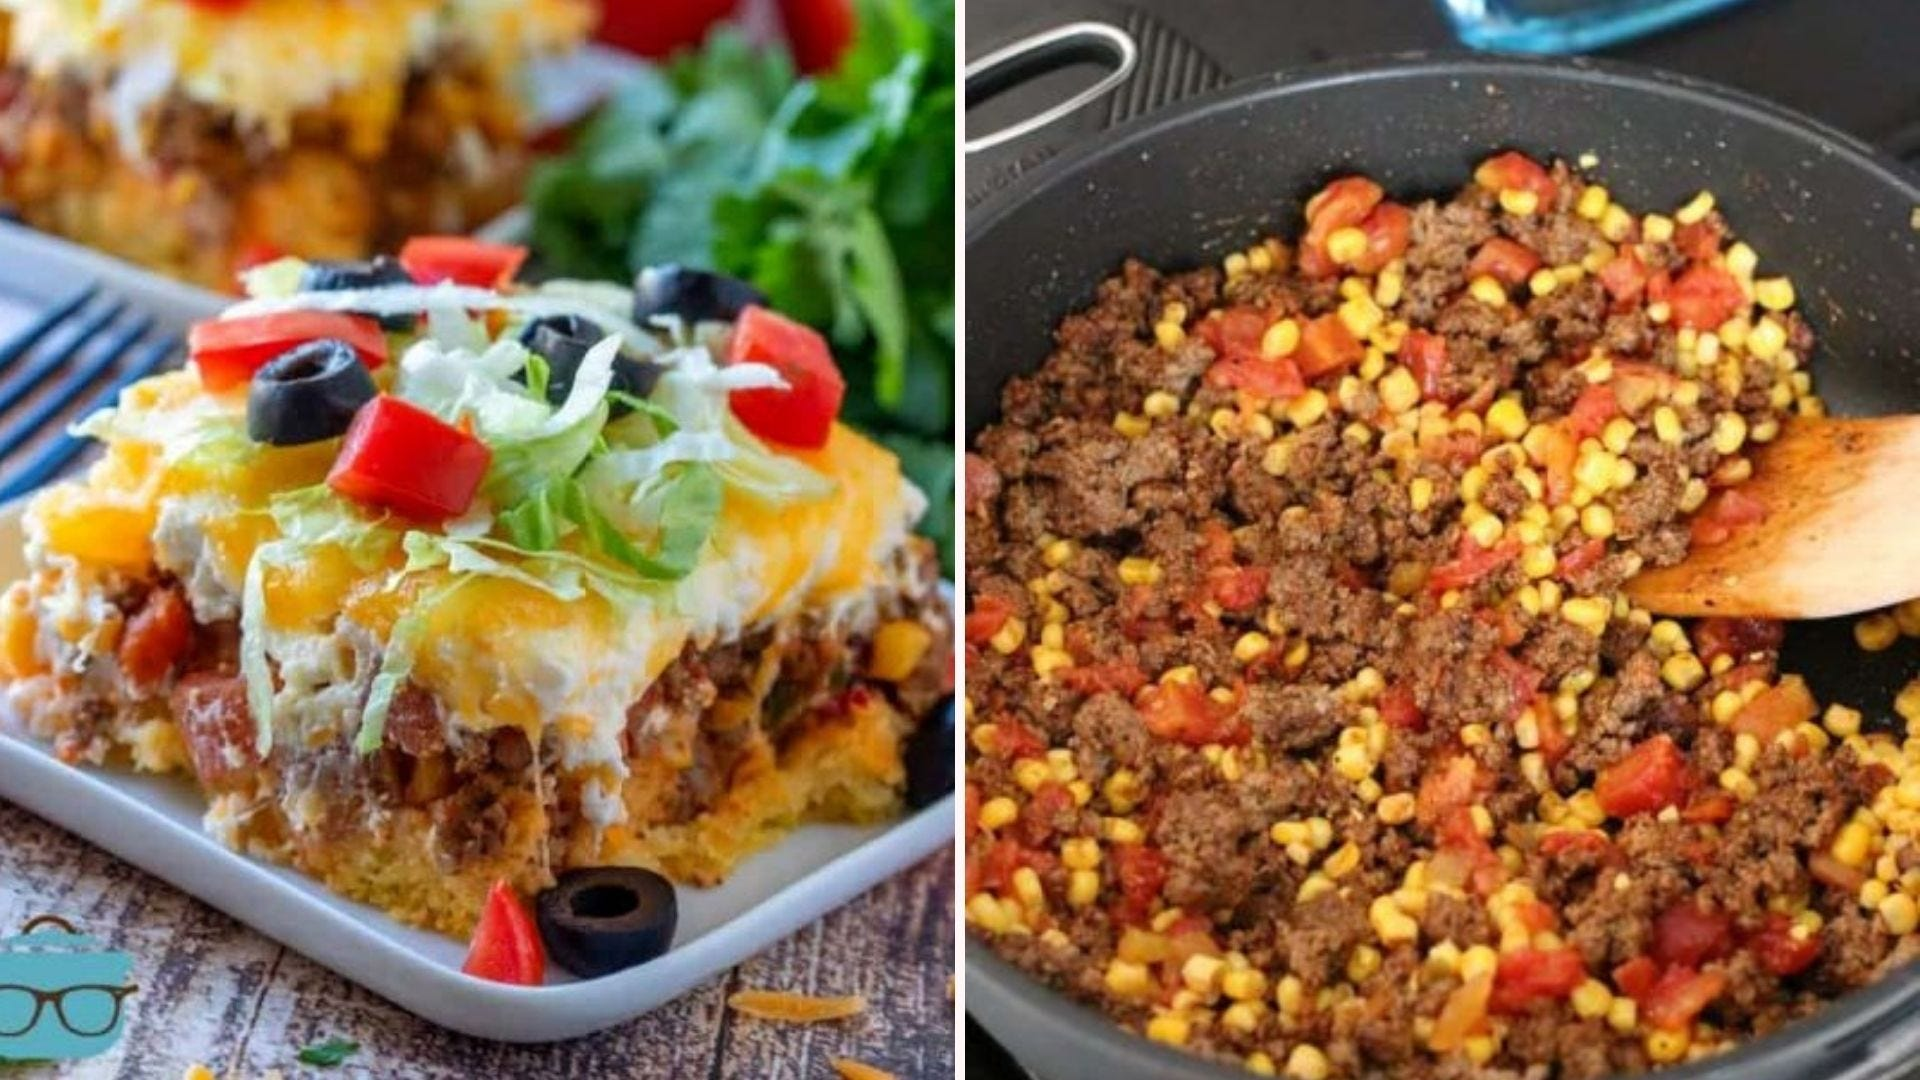 A piece of Cornbread Taco Bake on a plate, and meat, corn, and tomatoes cooking in a skillet.